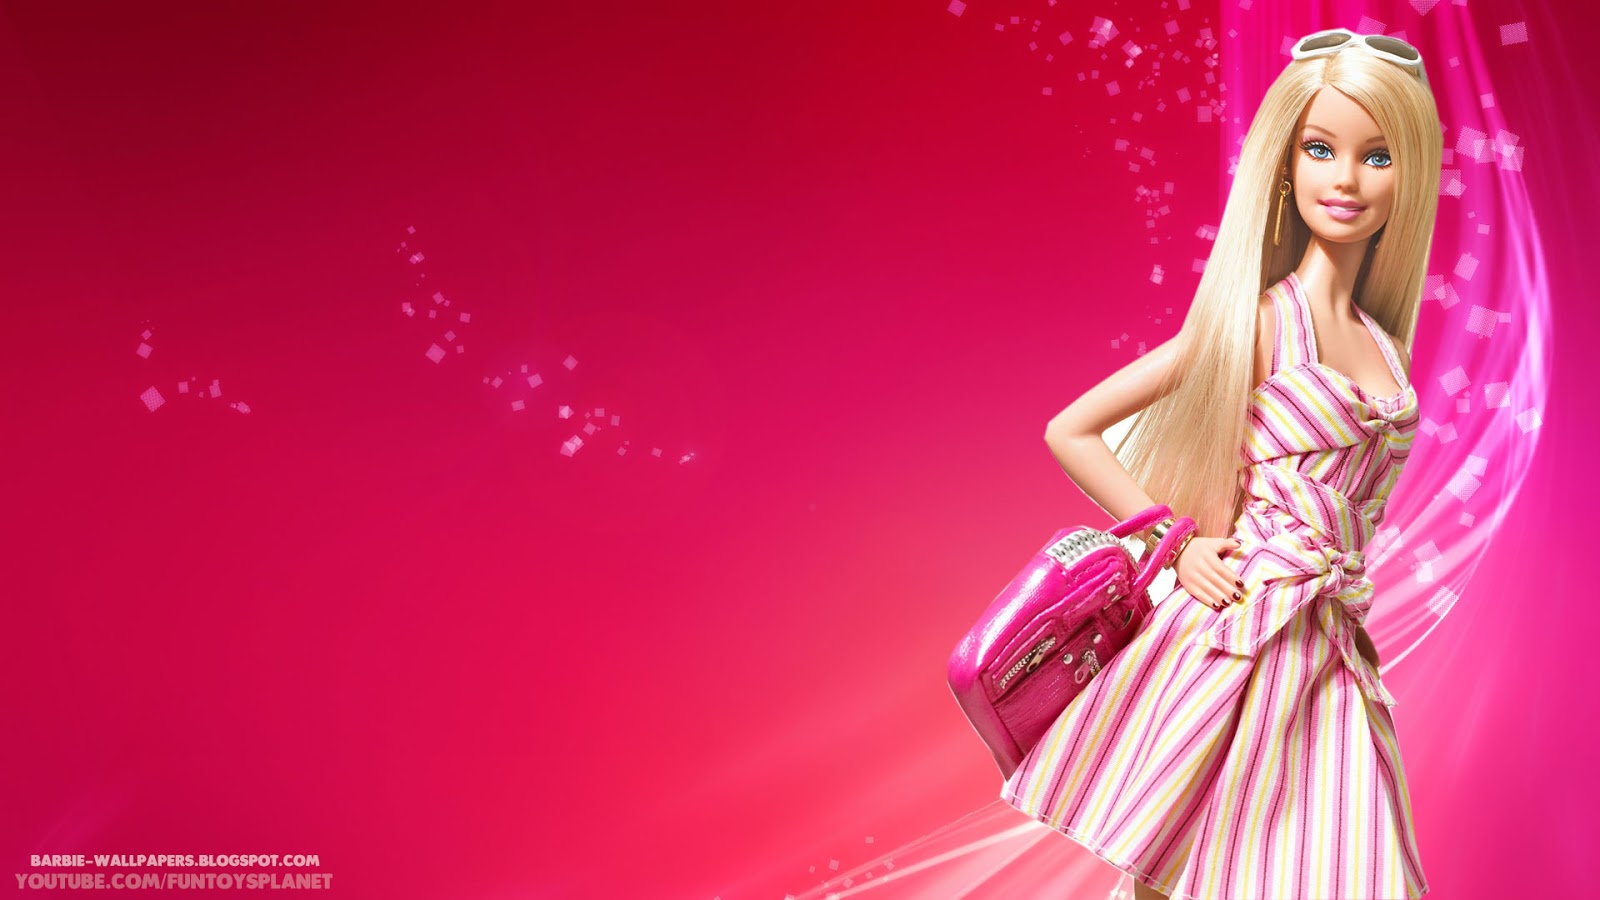 Barbie Wallpaper Hd: Wallpaper Barbie Hd